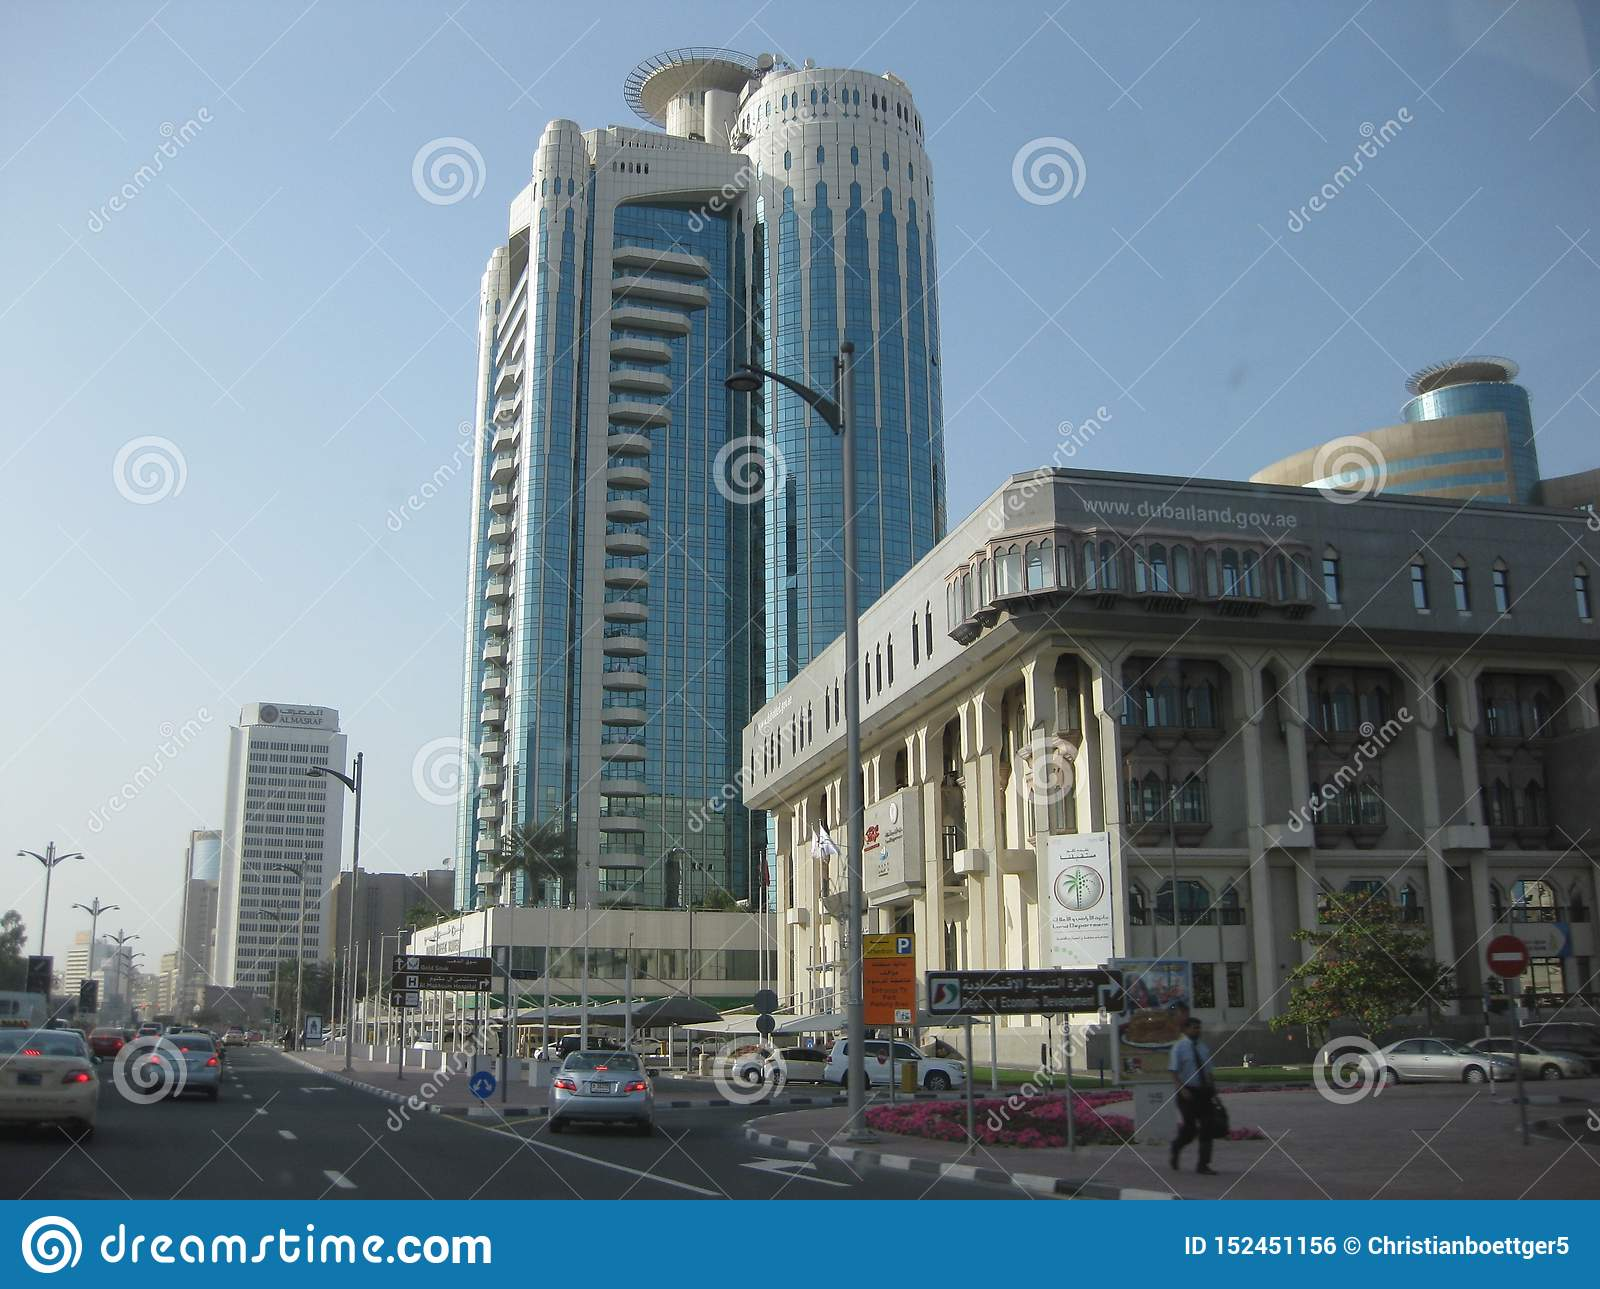 Dubai - business district between airport and harbour area